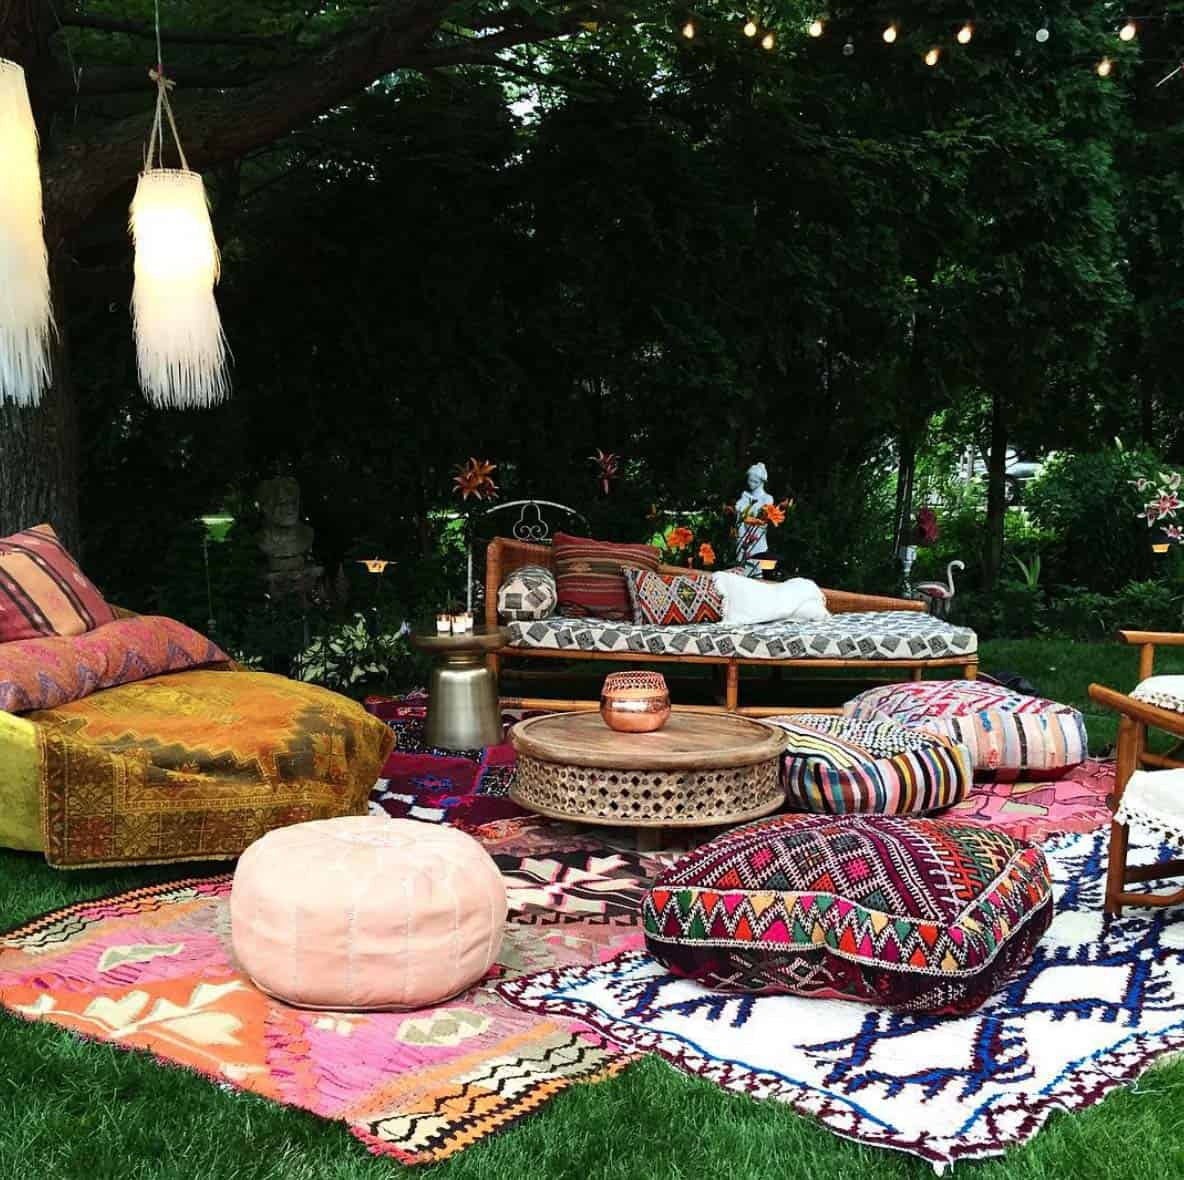 28 absolutely dreamy bohemian garden design ideas. Black Bedroom Furniture Sets. Home Design Ideas